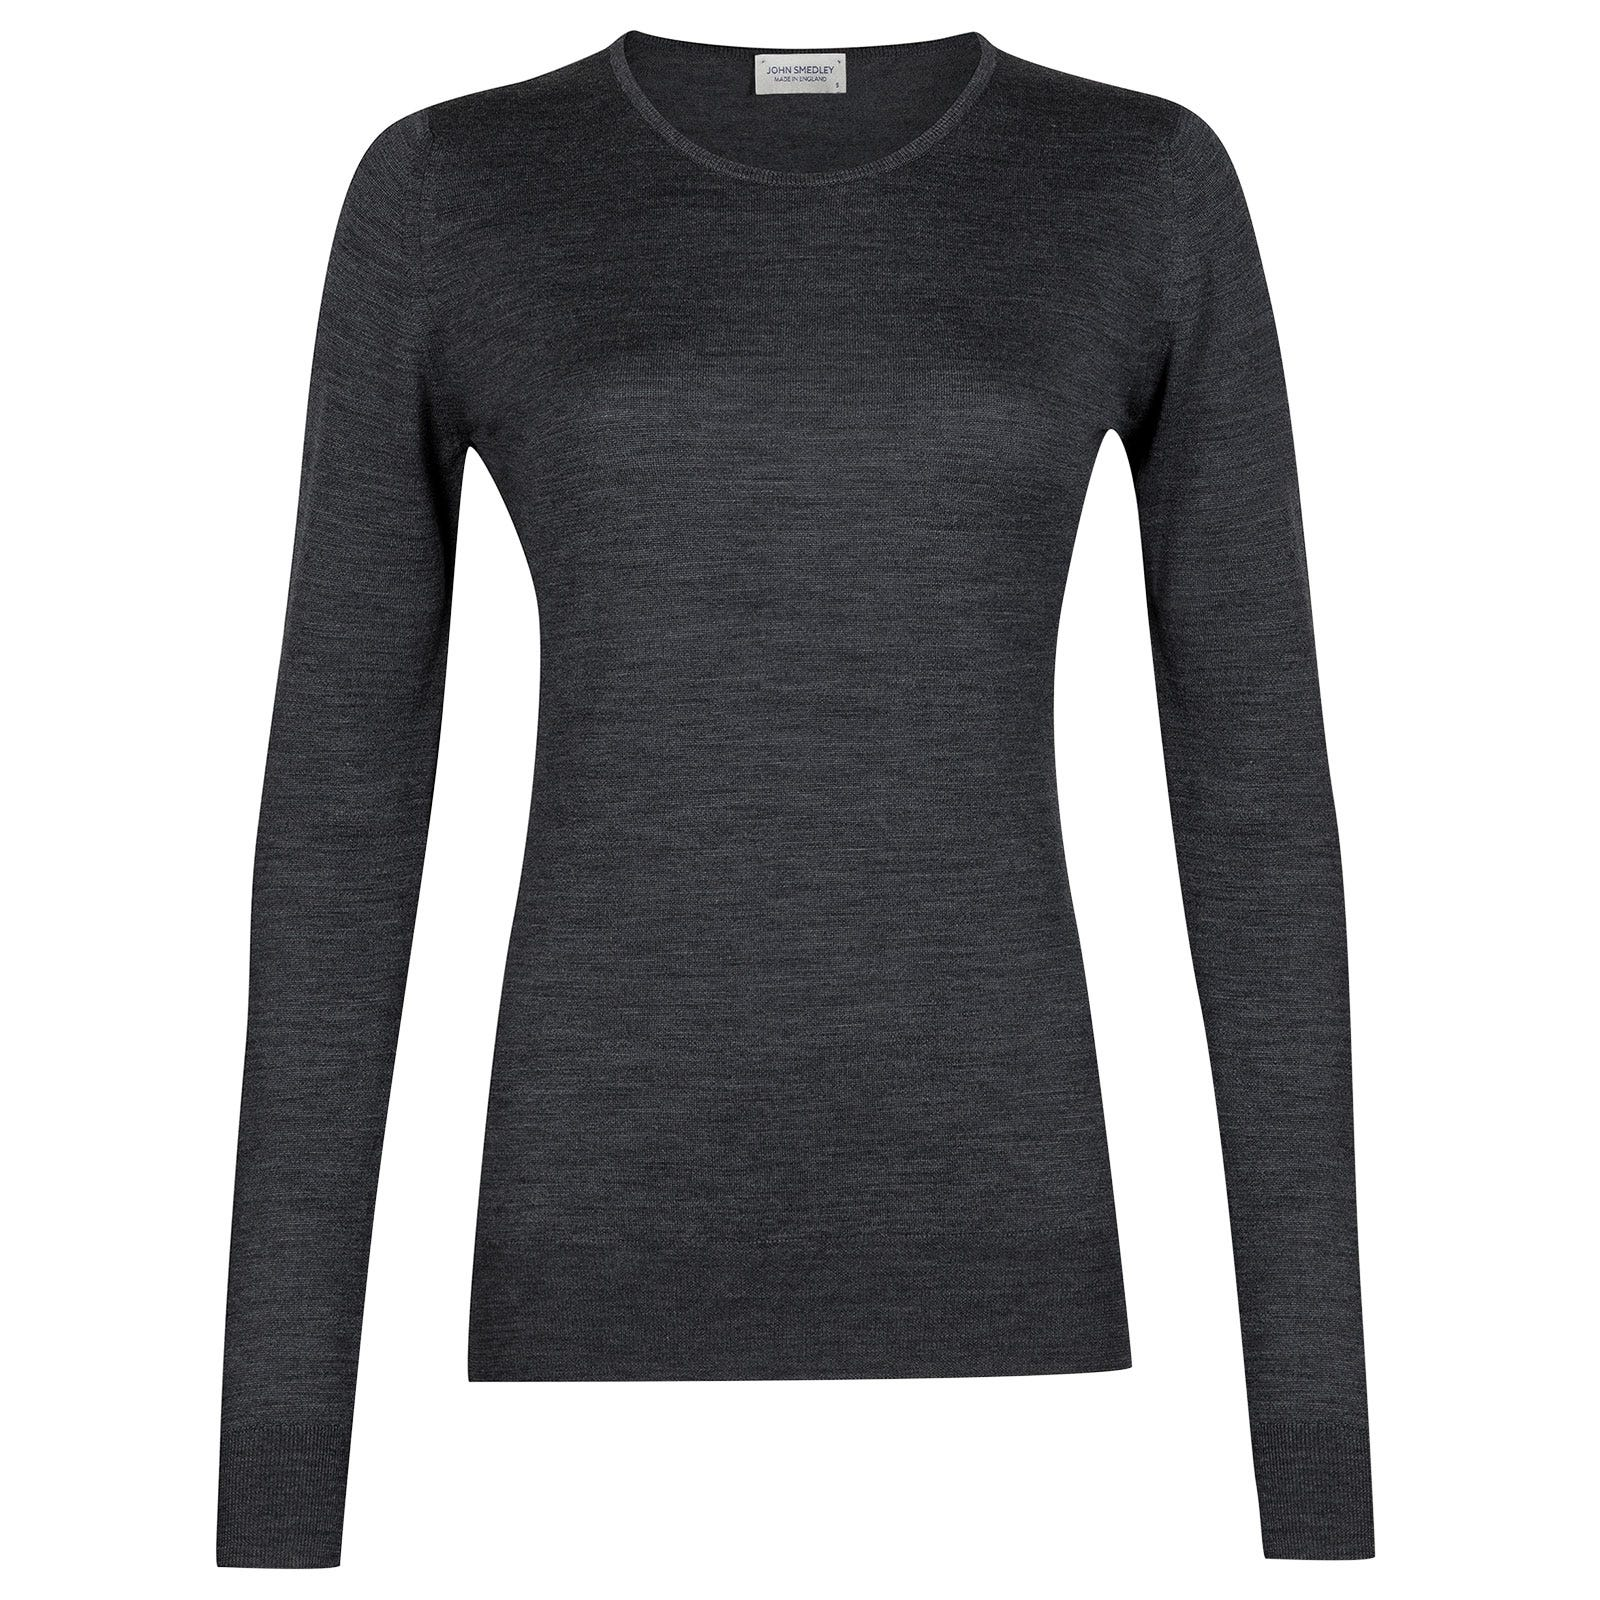 John Smedley geranium Merino Wool Sweater in Charcoal-S